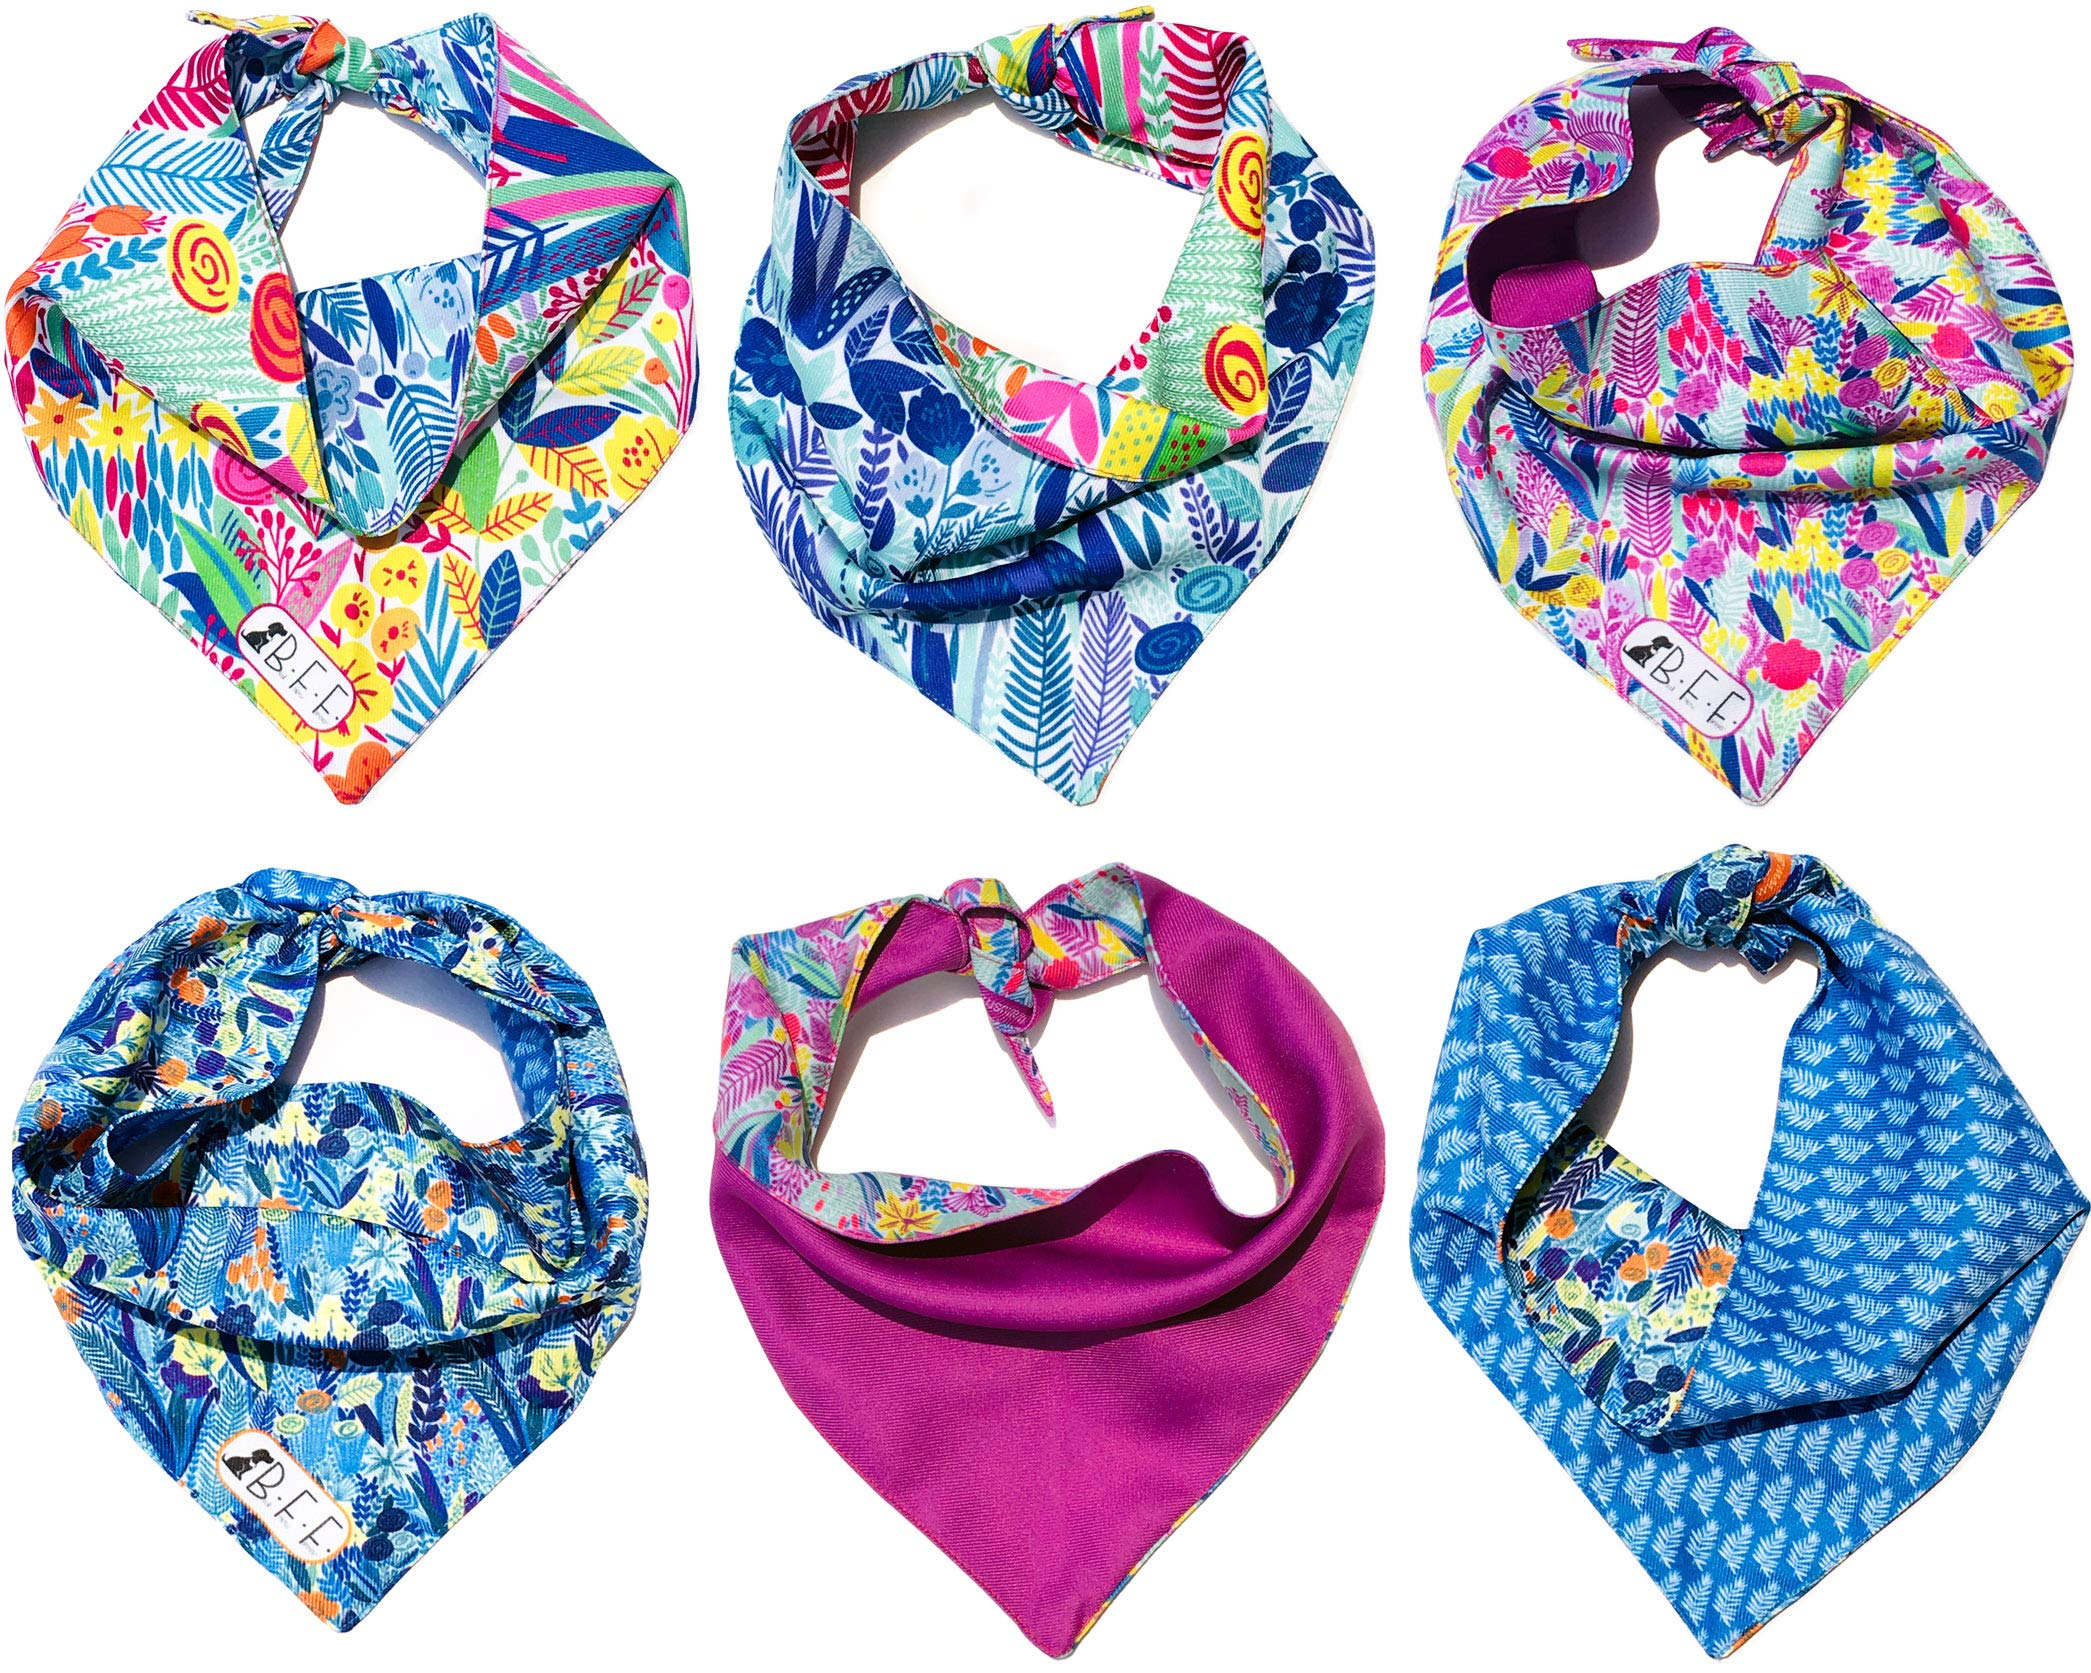 B&F 3 Pack Reversible Dog Bandana 3 Pieces - 6 Looks, Machine Washable Handmade pet Accessories. Scarves for Small, Medium,and Large Dogs. Mod. Botanical by B&F